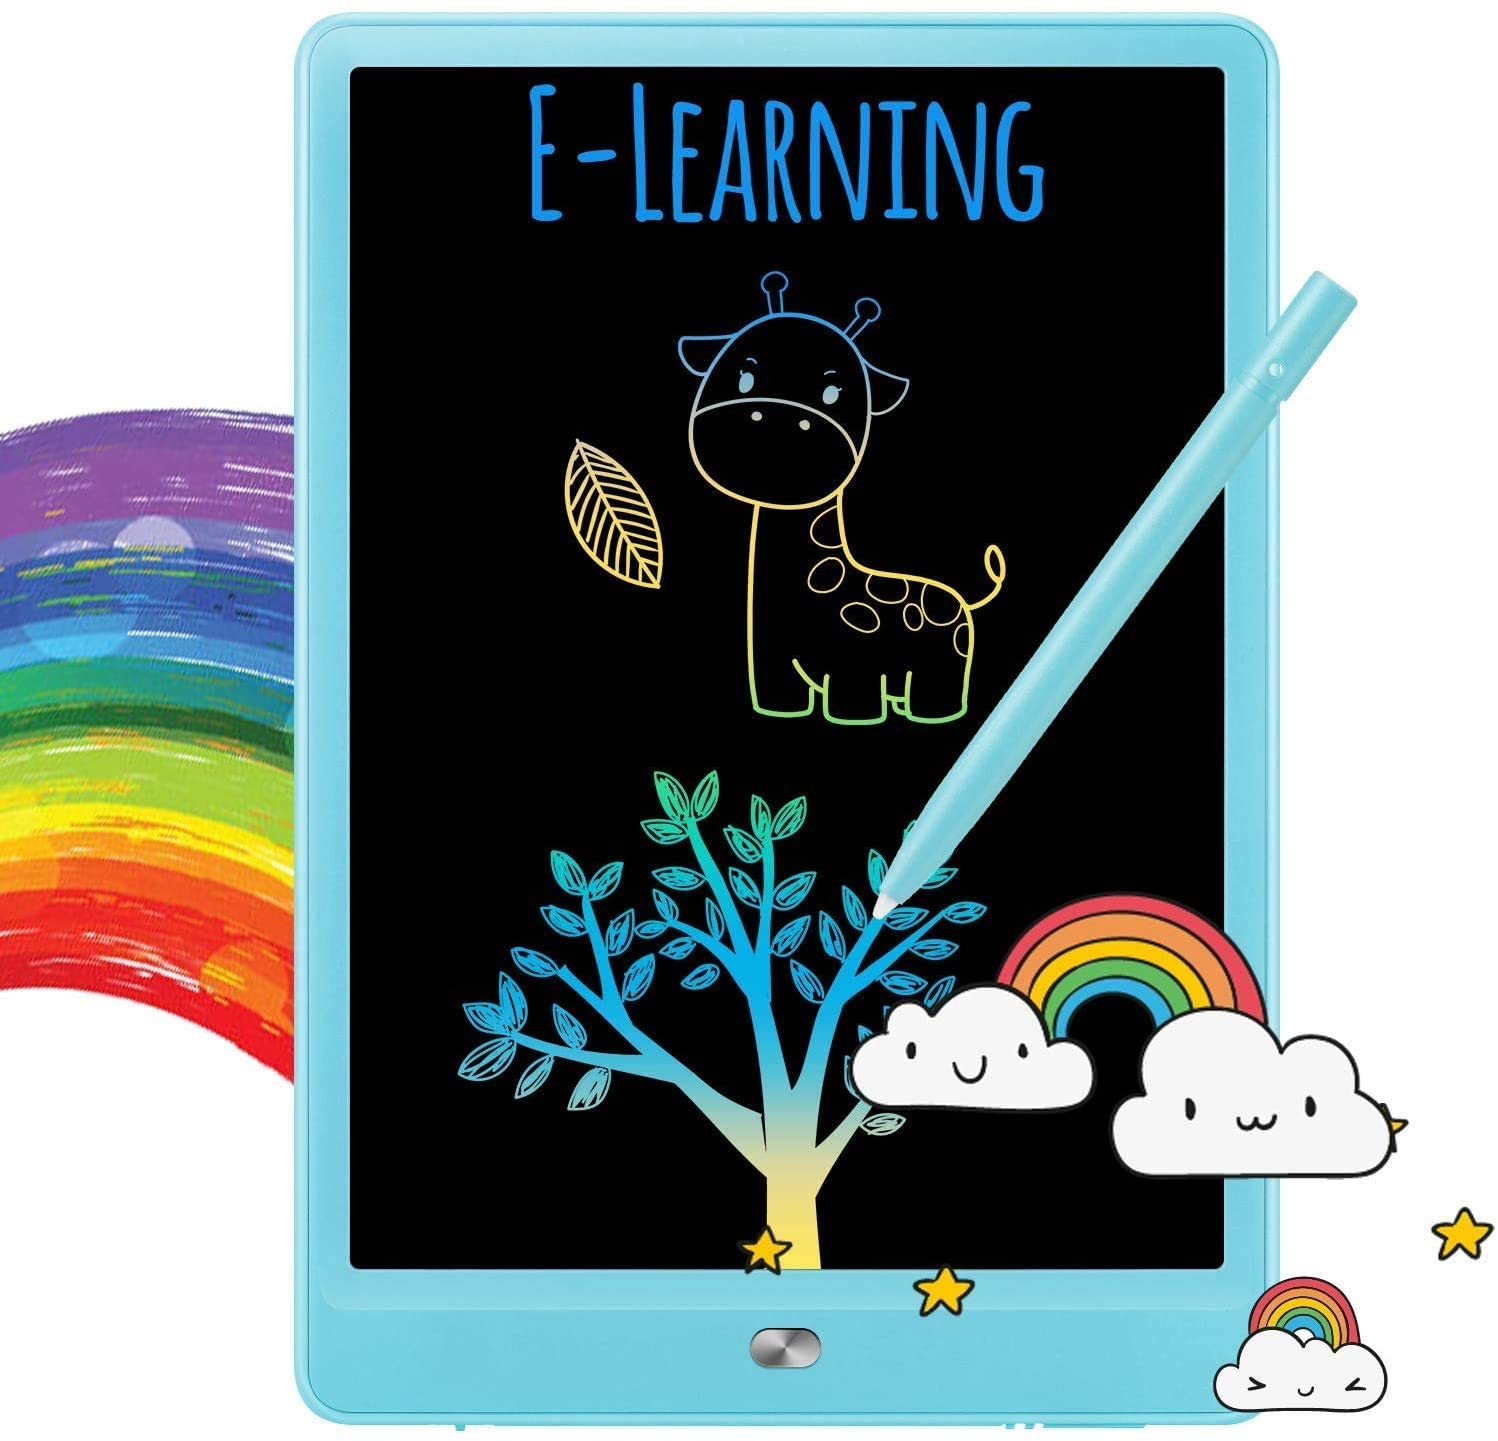 TEKFUN Boys Gifts, 8.5inch LCD Writing Tablet Doodle Board with Rainbow Color, Educational Toys for 3 4 5 6 Year Old Boys, Reusable Drawing Tablet Drawing Board(Blue)